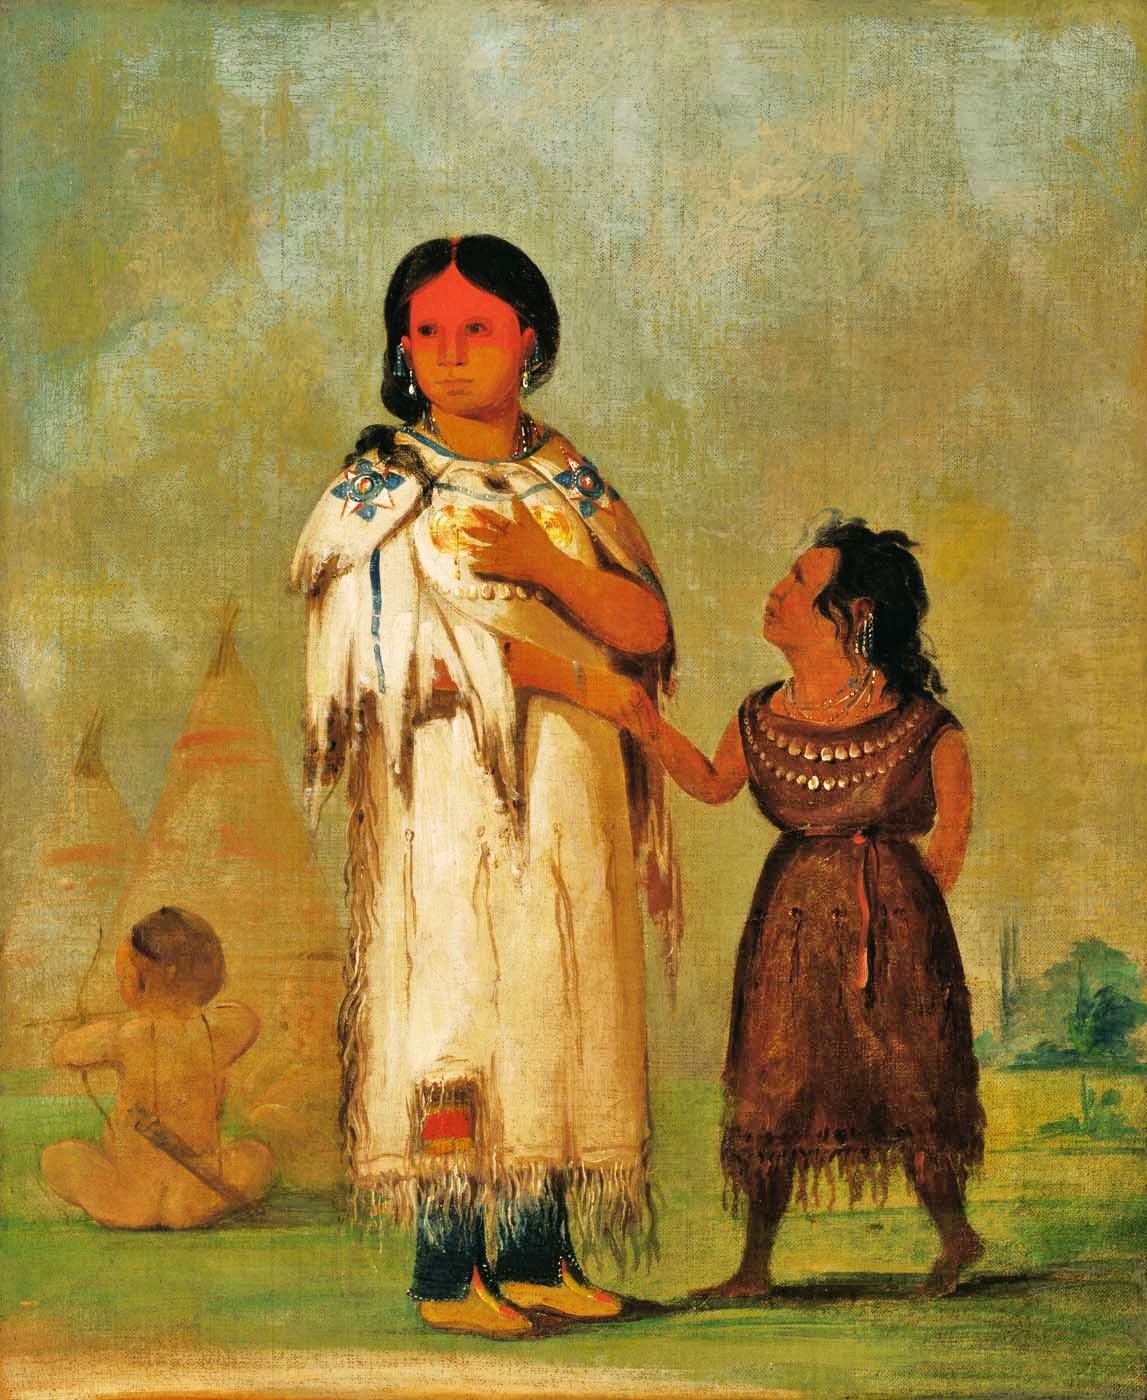 Native American Women Artists George catlin  american artistNative American Women Artists